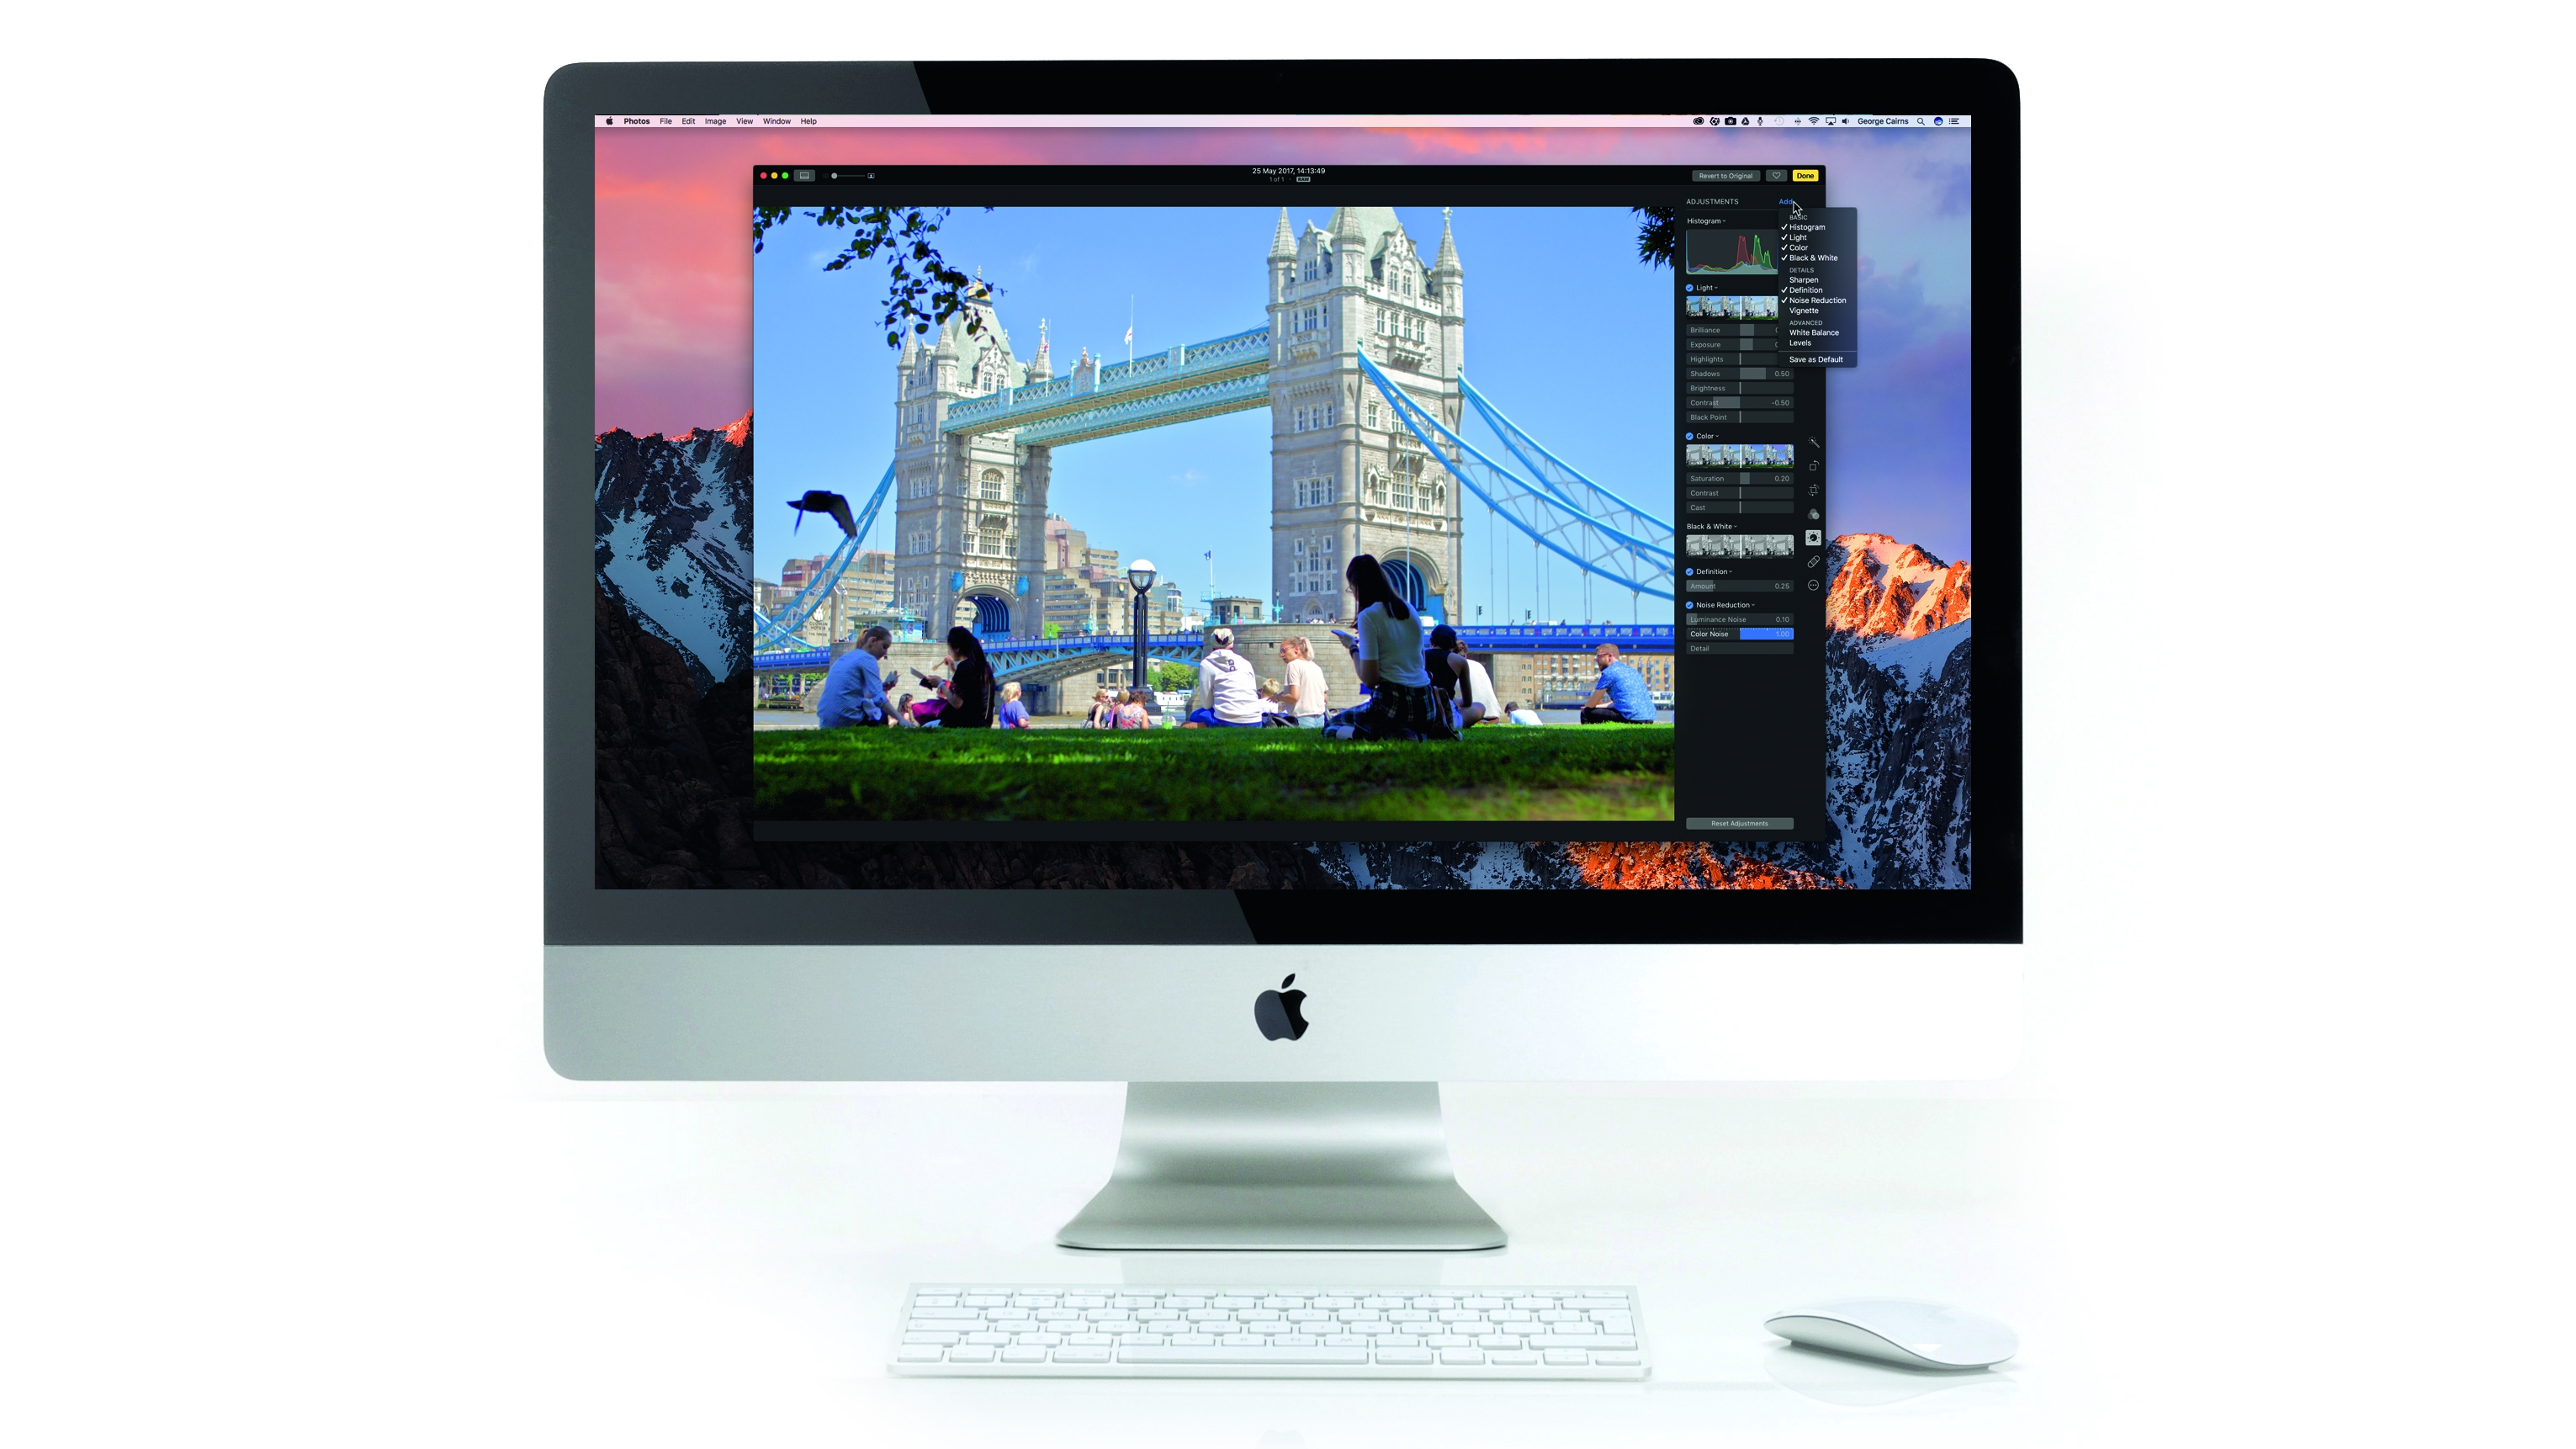 Best PC for photo editing 2019: top desktops for Photoshop